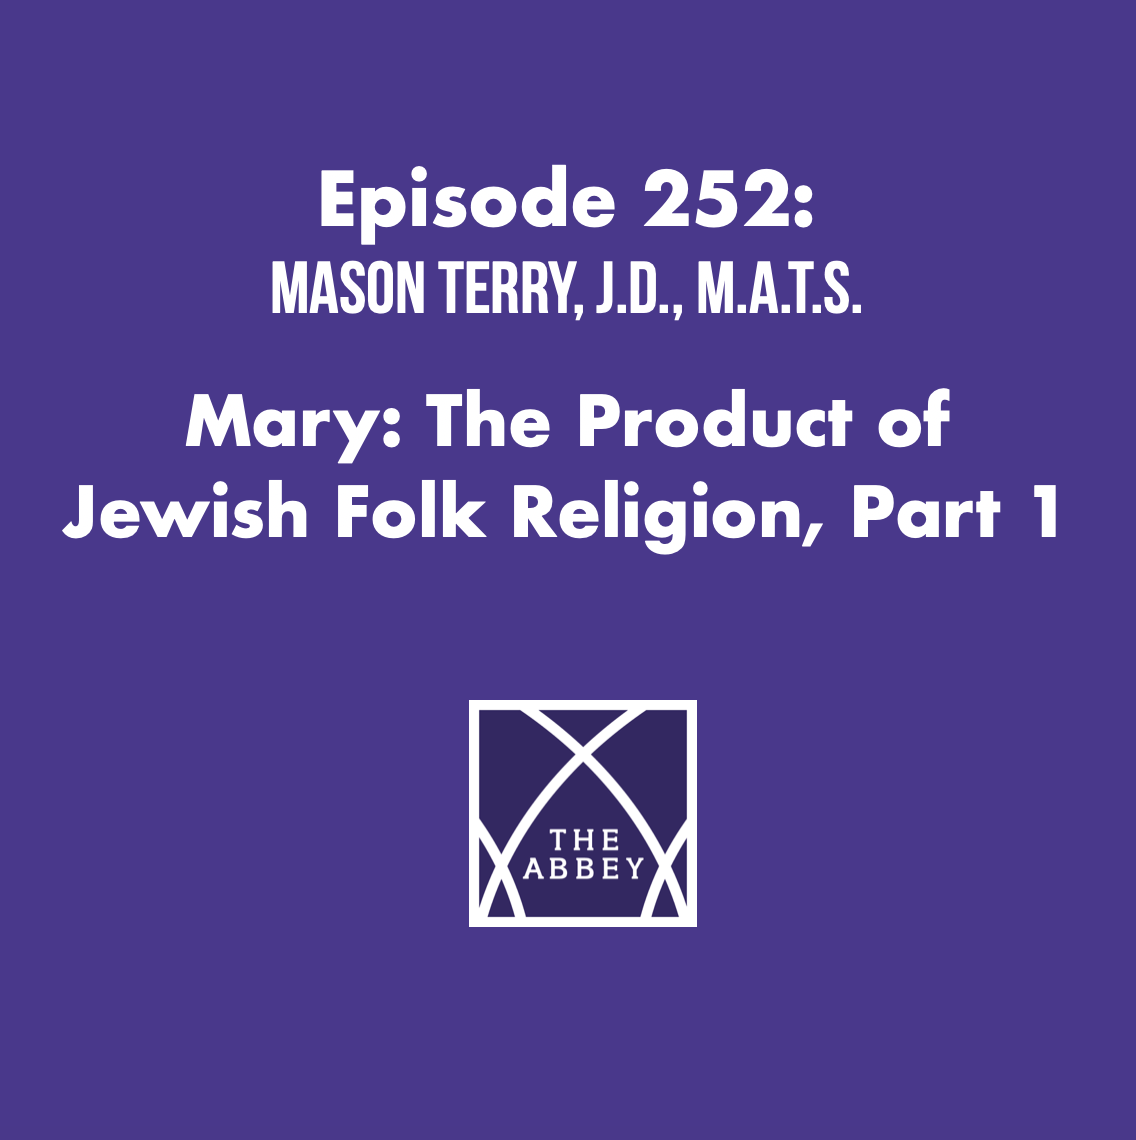 Episode 252: Mary: The Product of Jewish Folk Religion with Mason Terry, J.D., M.A.T.S.